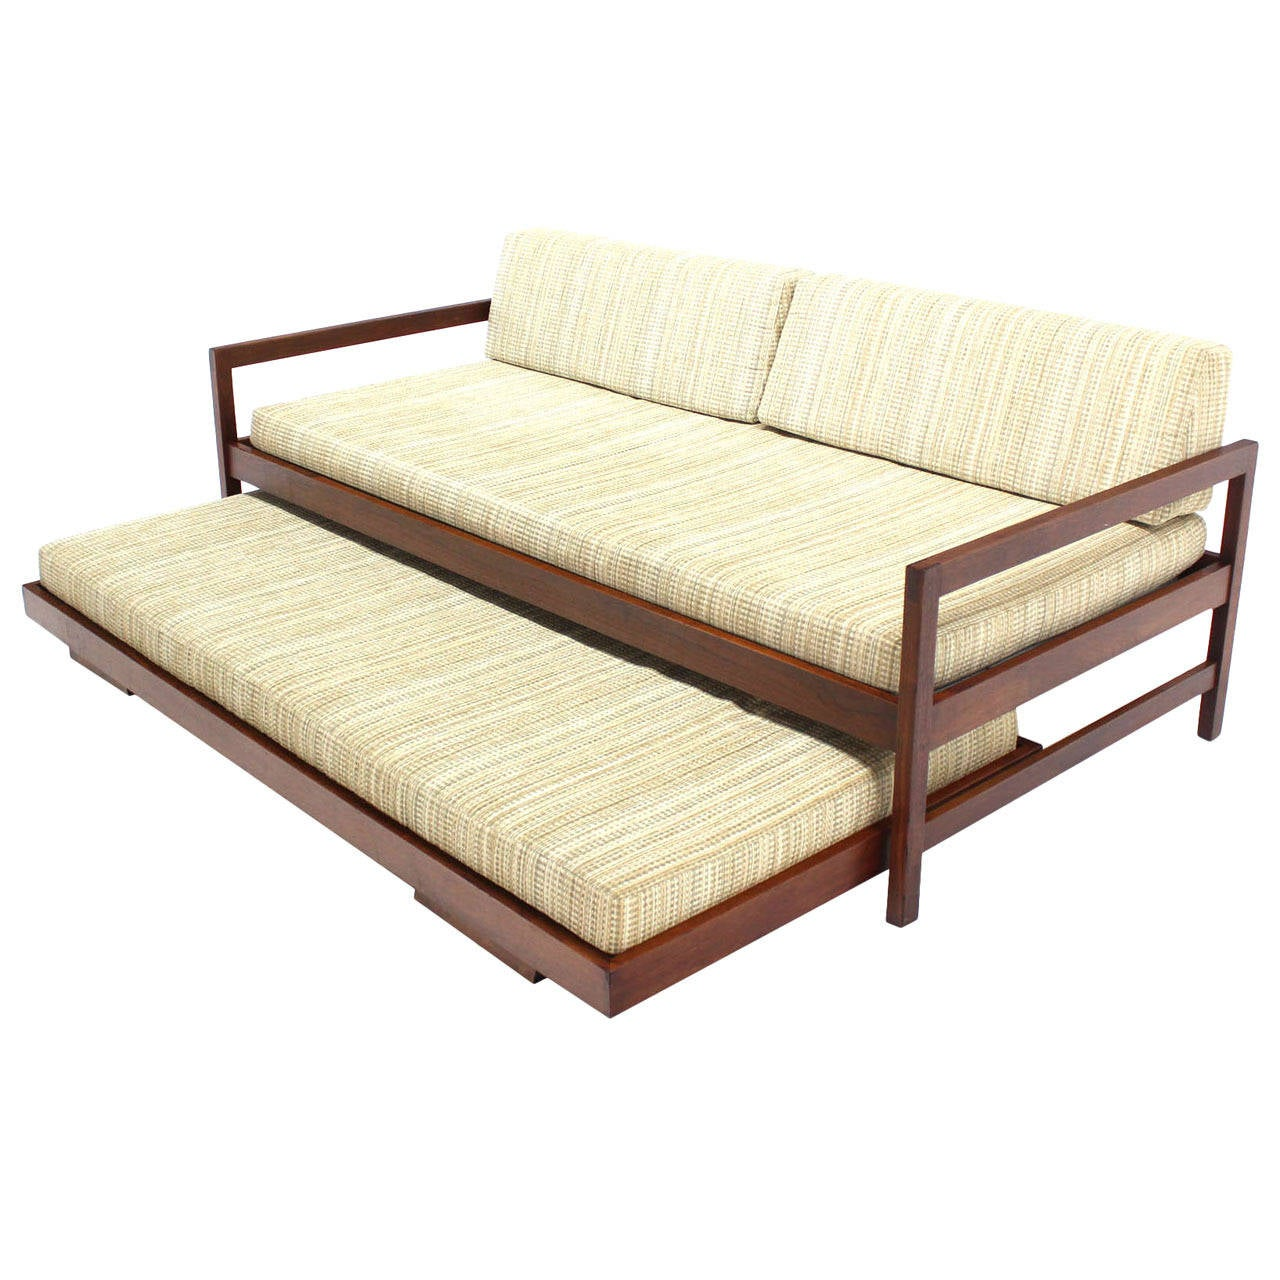 Solid walnut frame mid century modern trundle pull out daybed at 1stdibs Loveseat with pullout bed